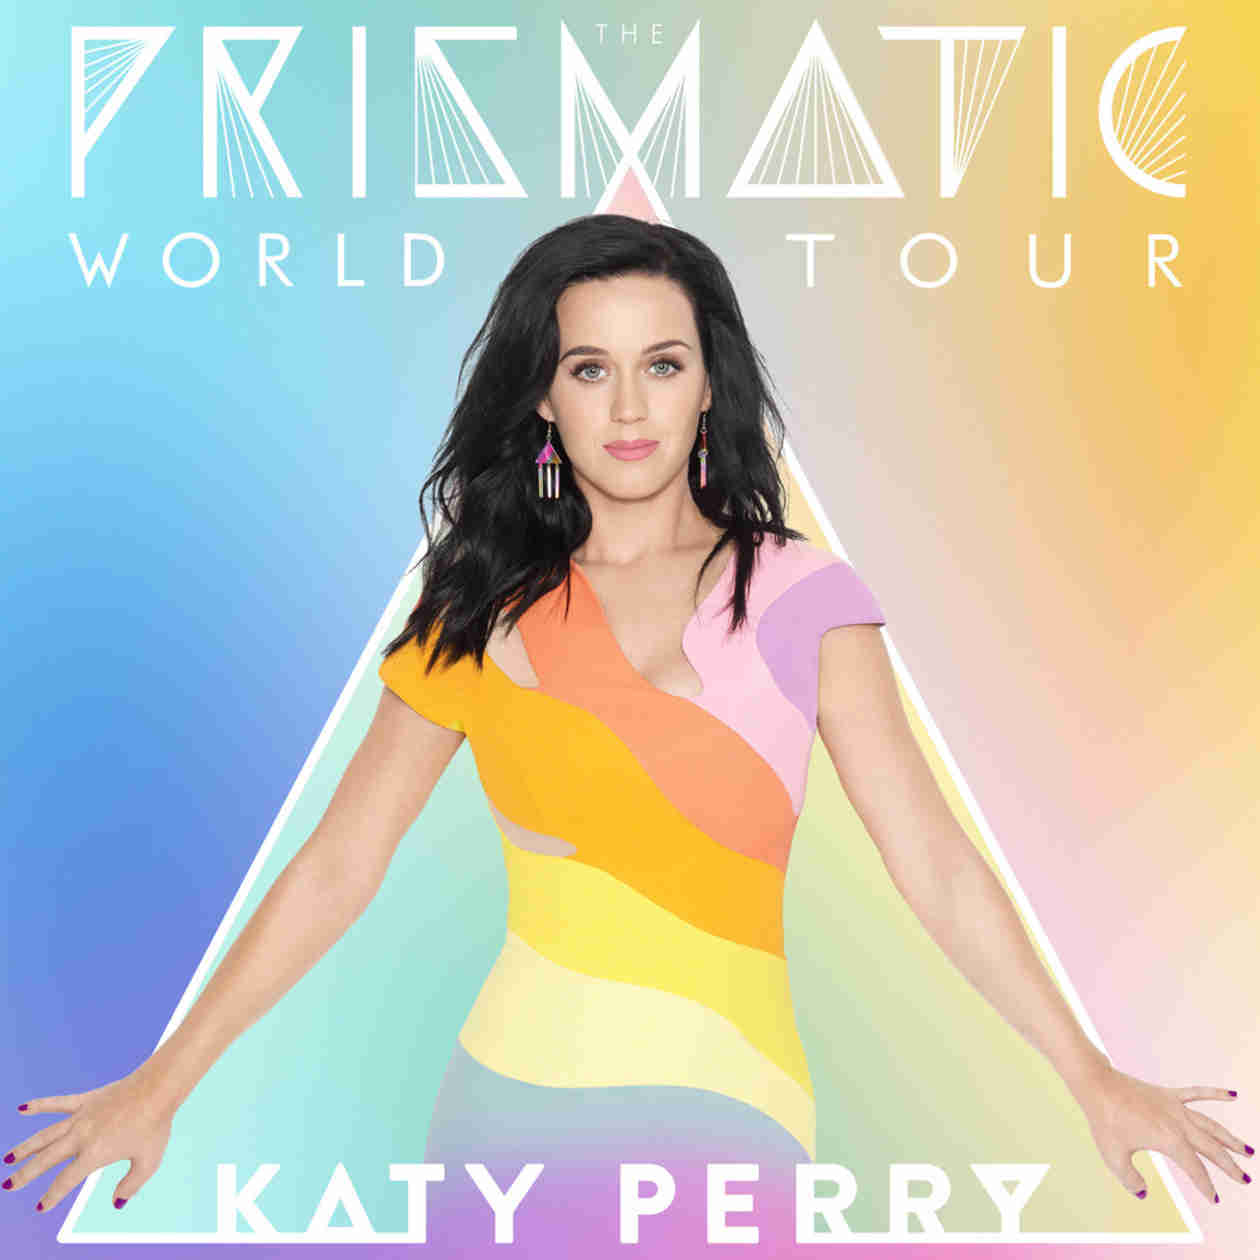 Katy Perry's Prismatic World Tour: Win Two Tickets to See Her Live — Giveaway Alert!